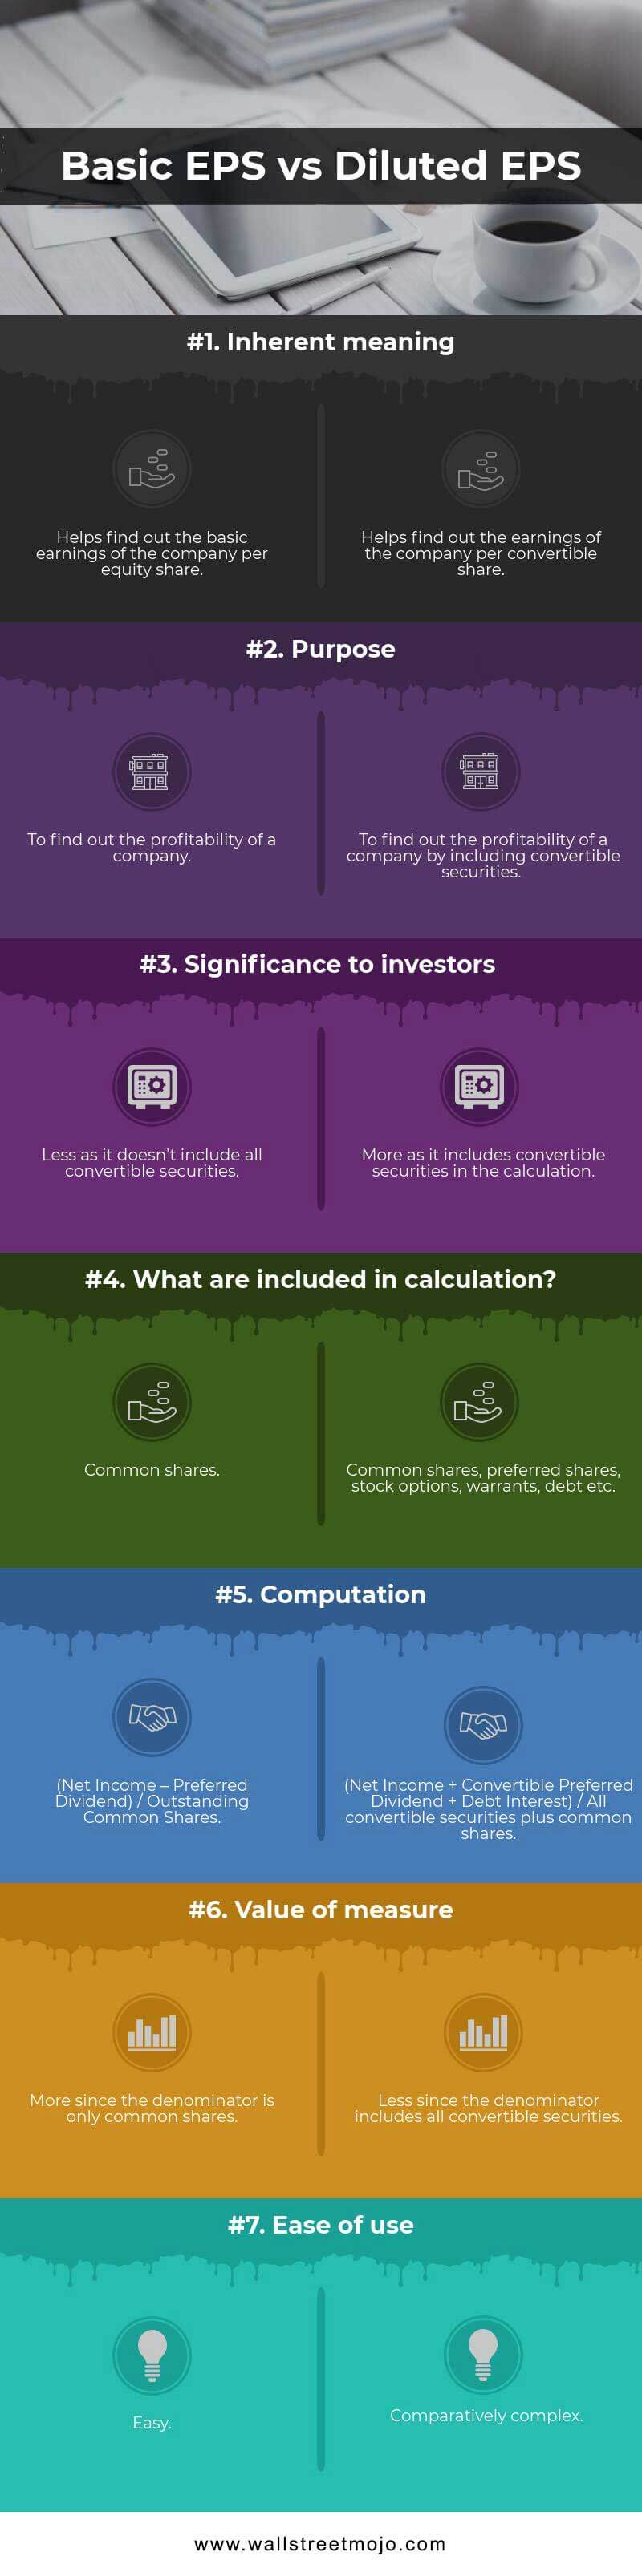 Basic EPS vs. Diluted EPS Infographics